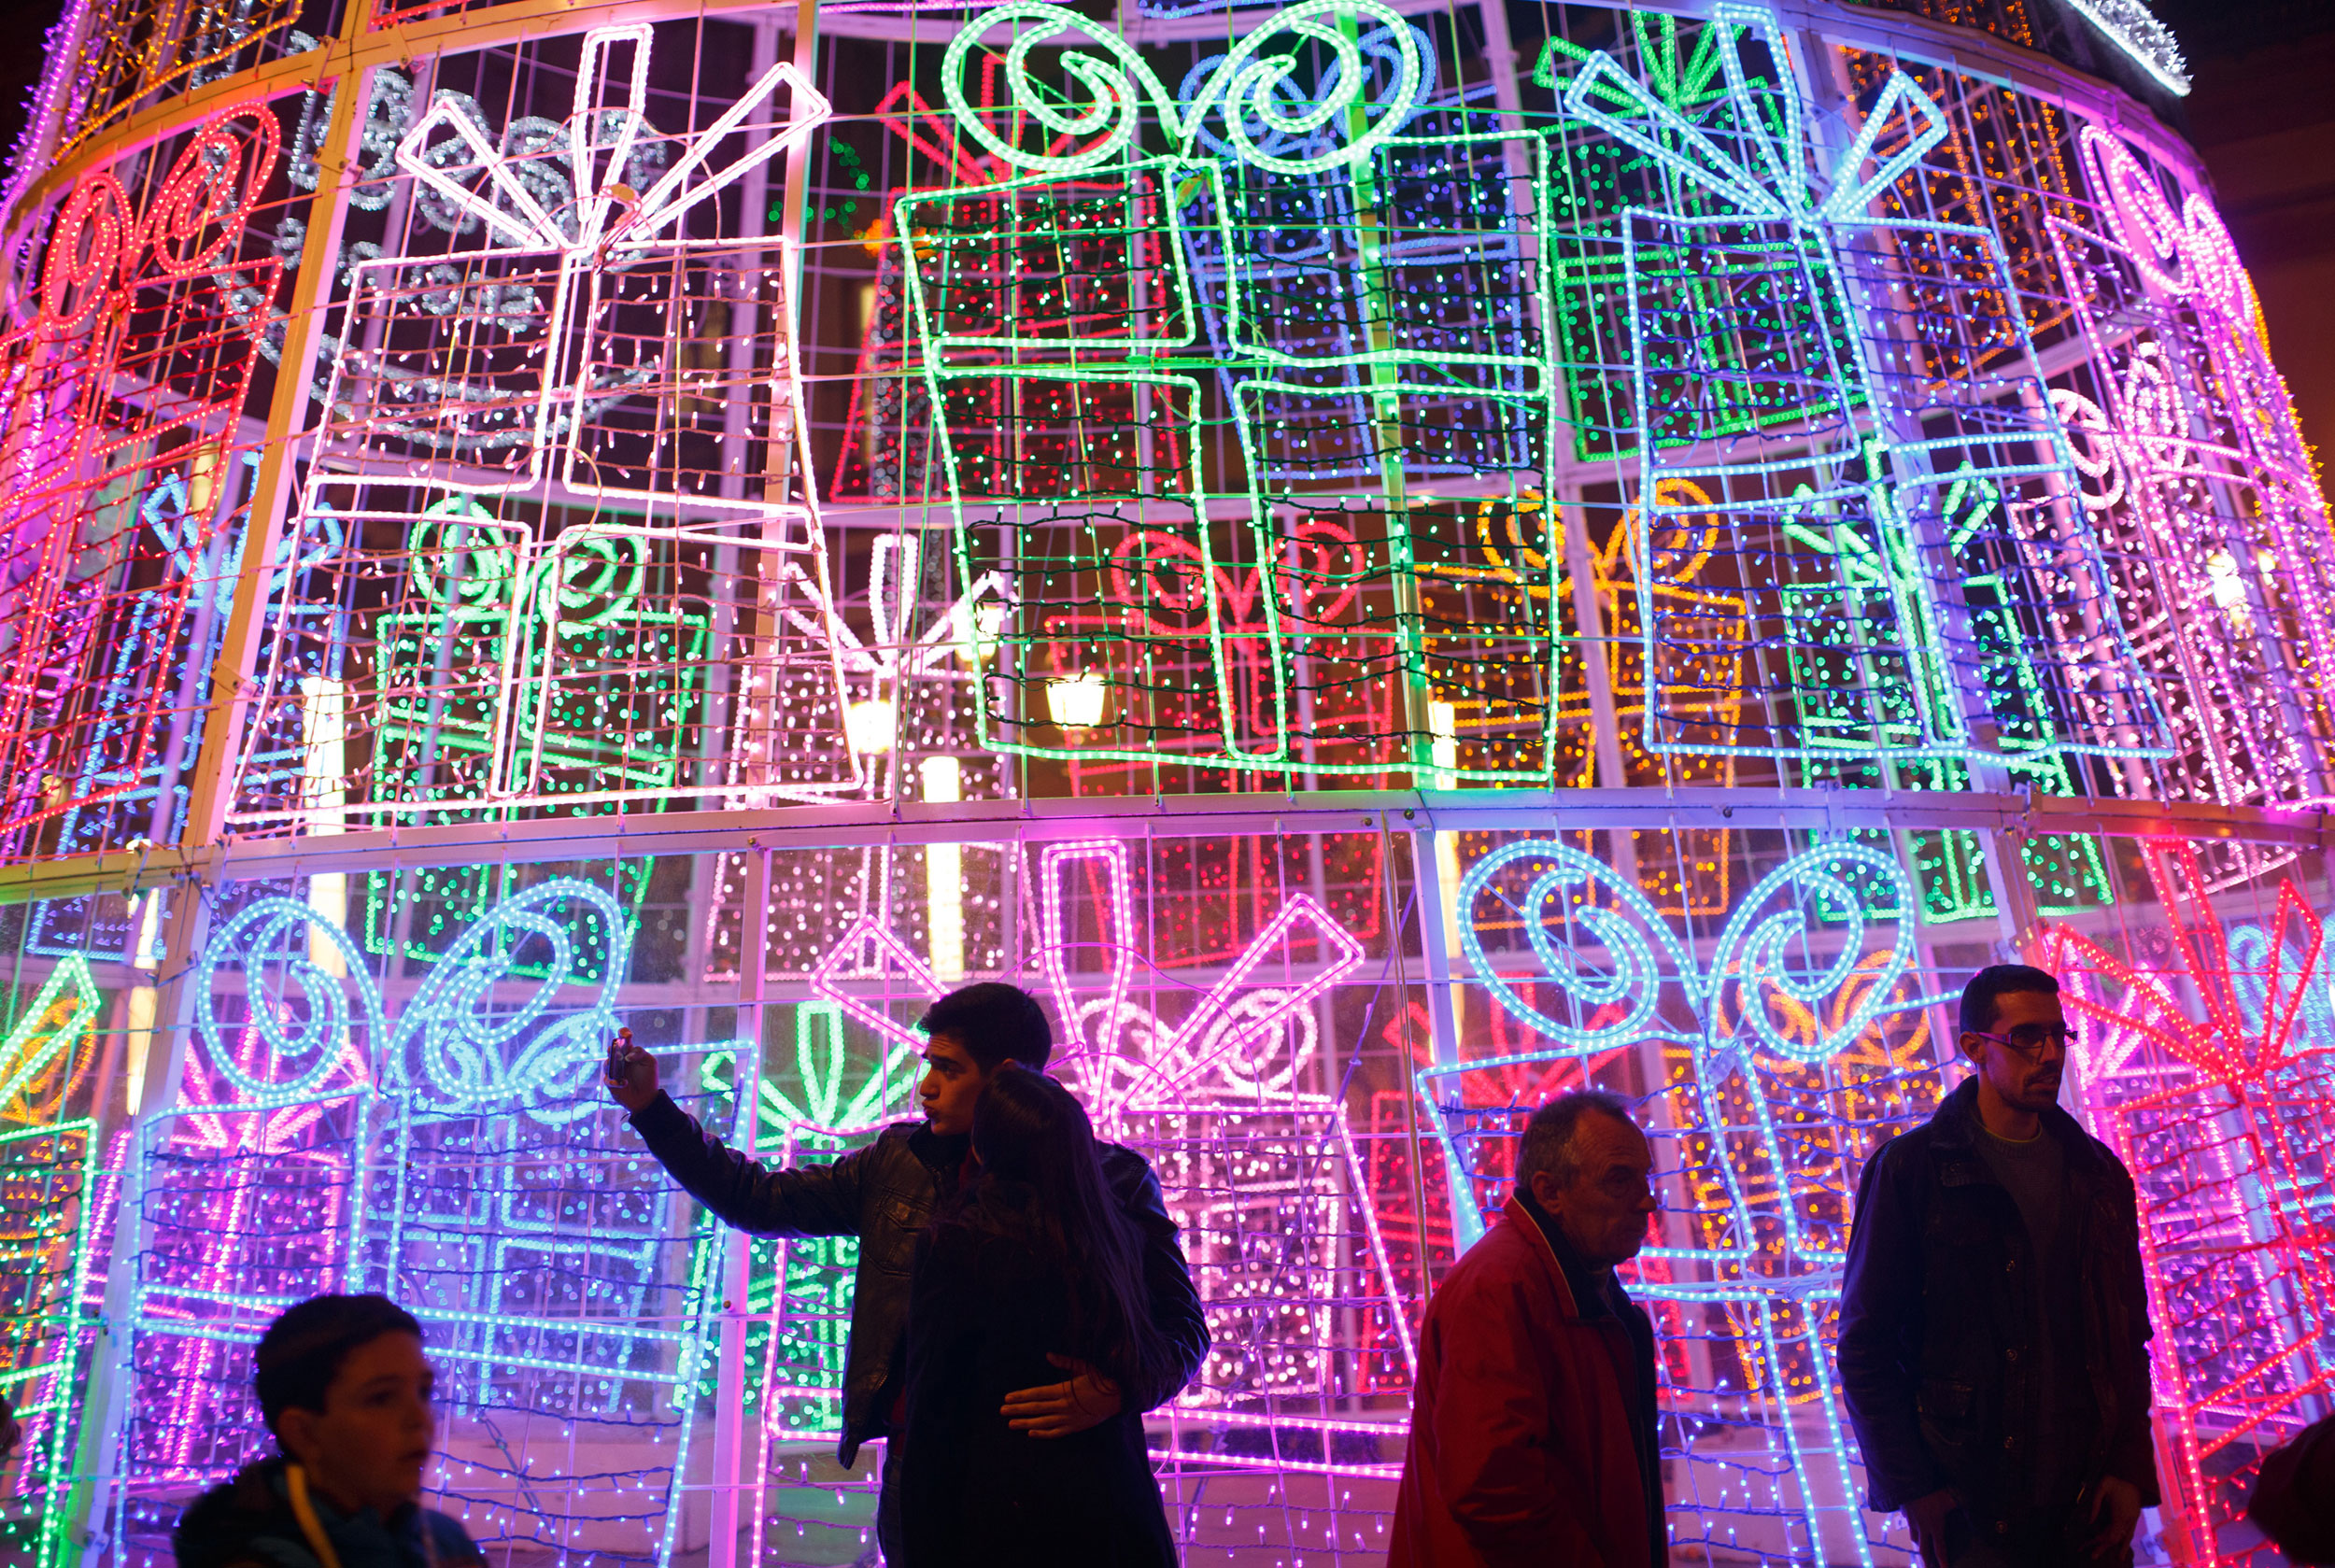 A couple poses for a  selfie  next to a light installation for Christmas celebrations in the Andalusian capital of Seville, southern Spain on Dec. 23, 2014.